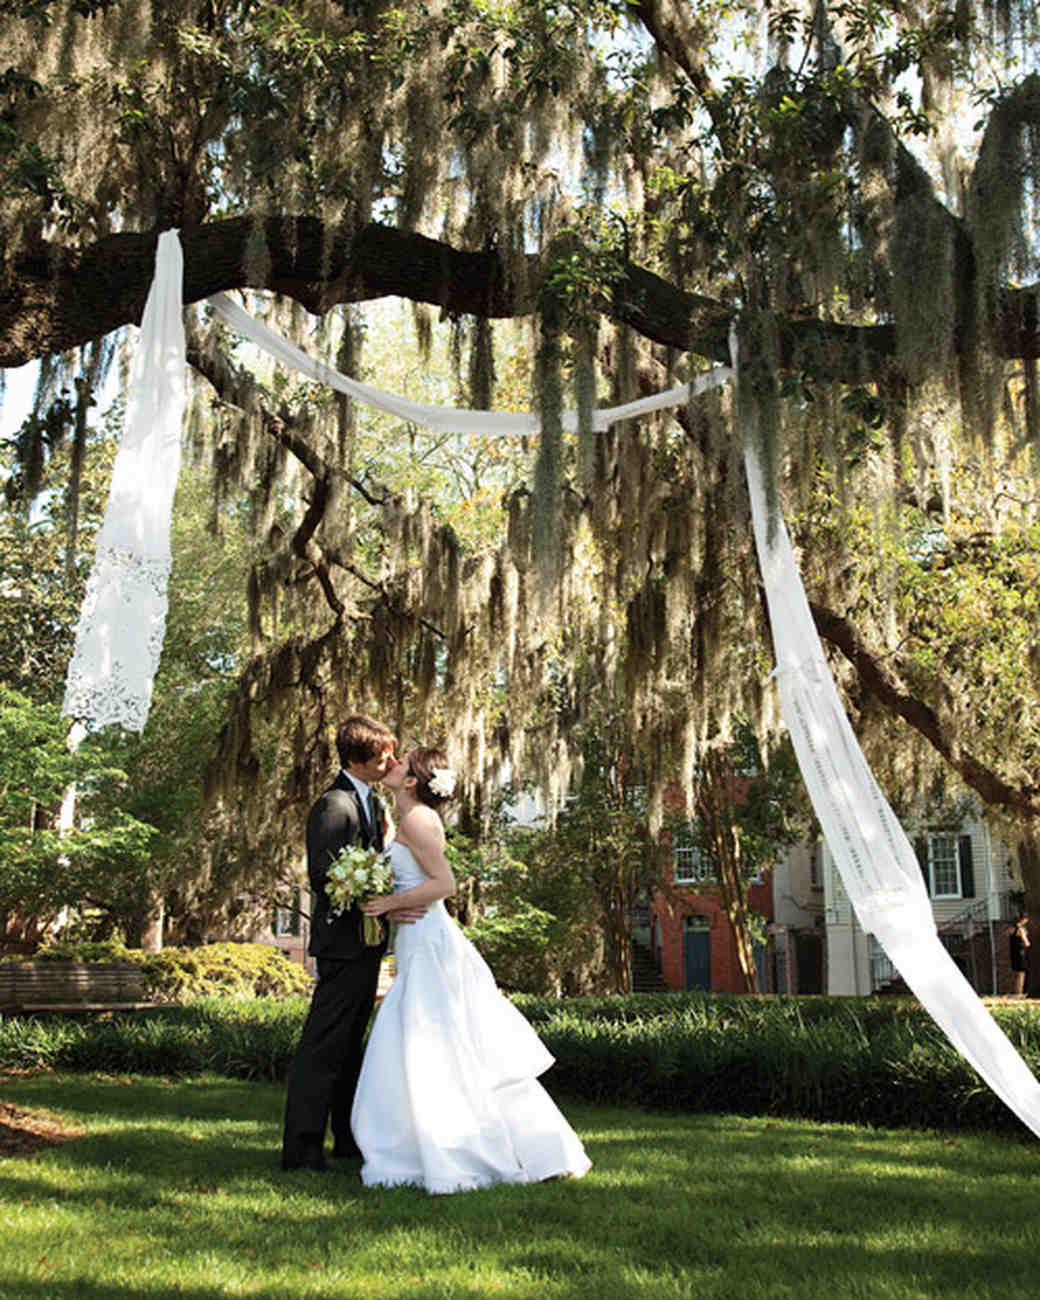 Whimsical Garden Wedding: A Whimsical Green Outdoor Destination Wedding In Savannah